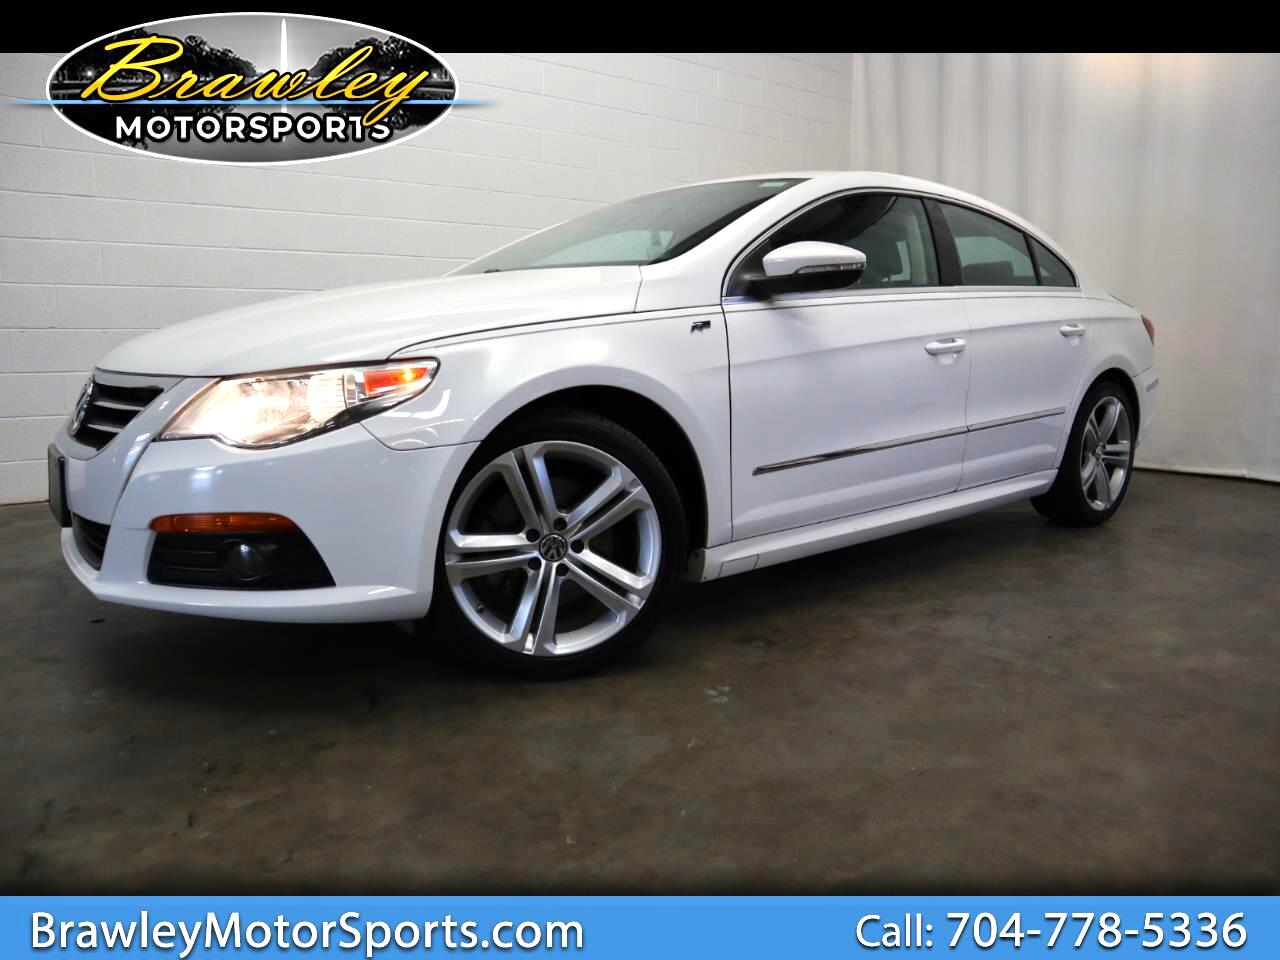 Volkswagen CC 2.0T R-Line Executive 2012